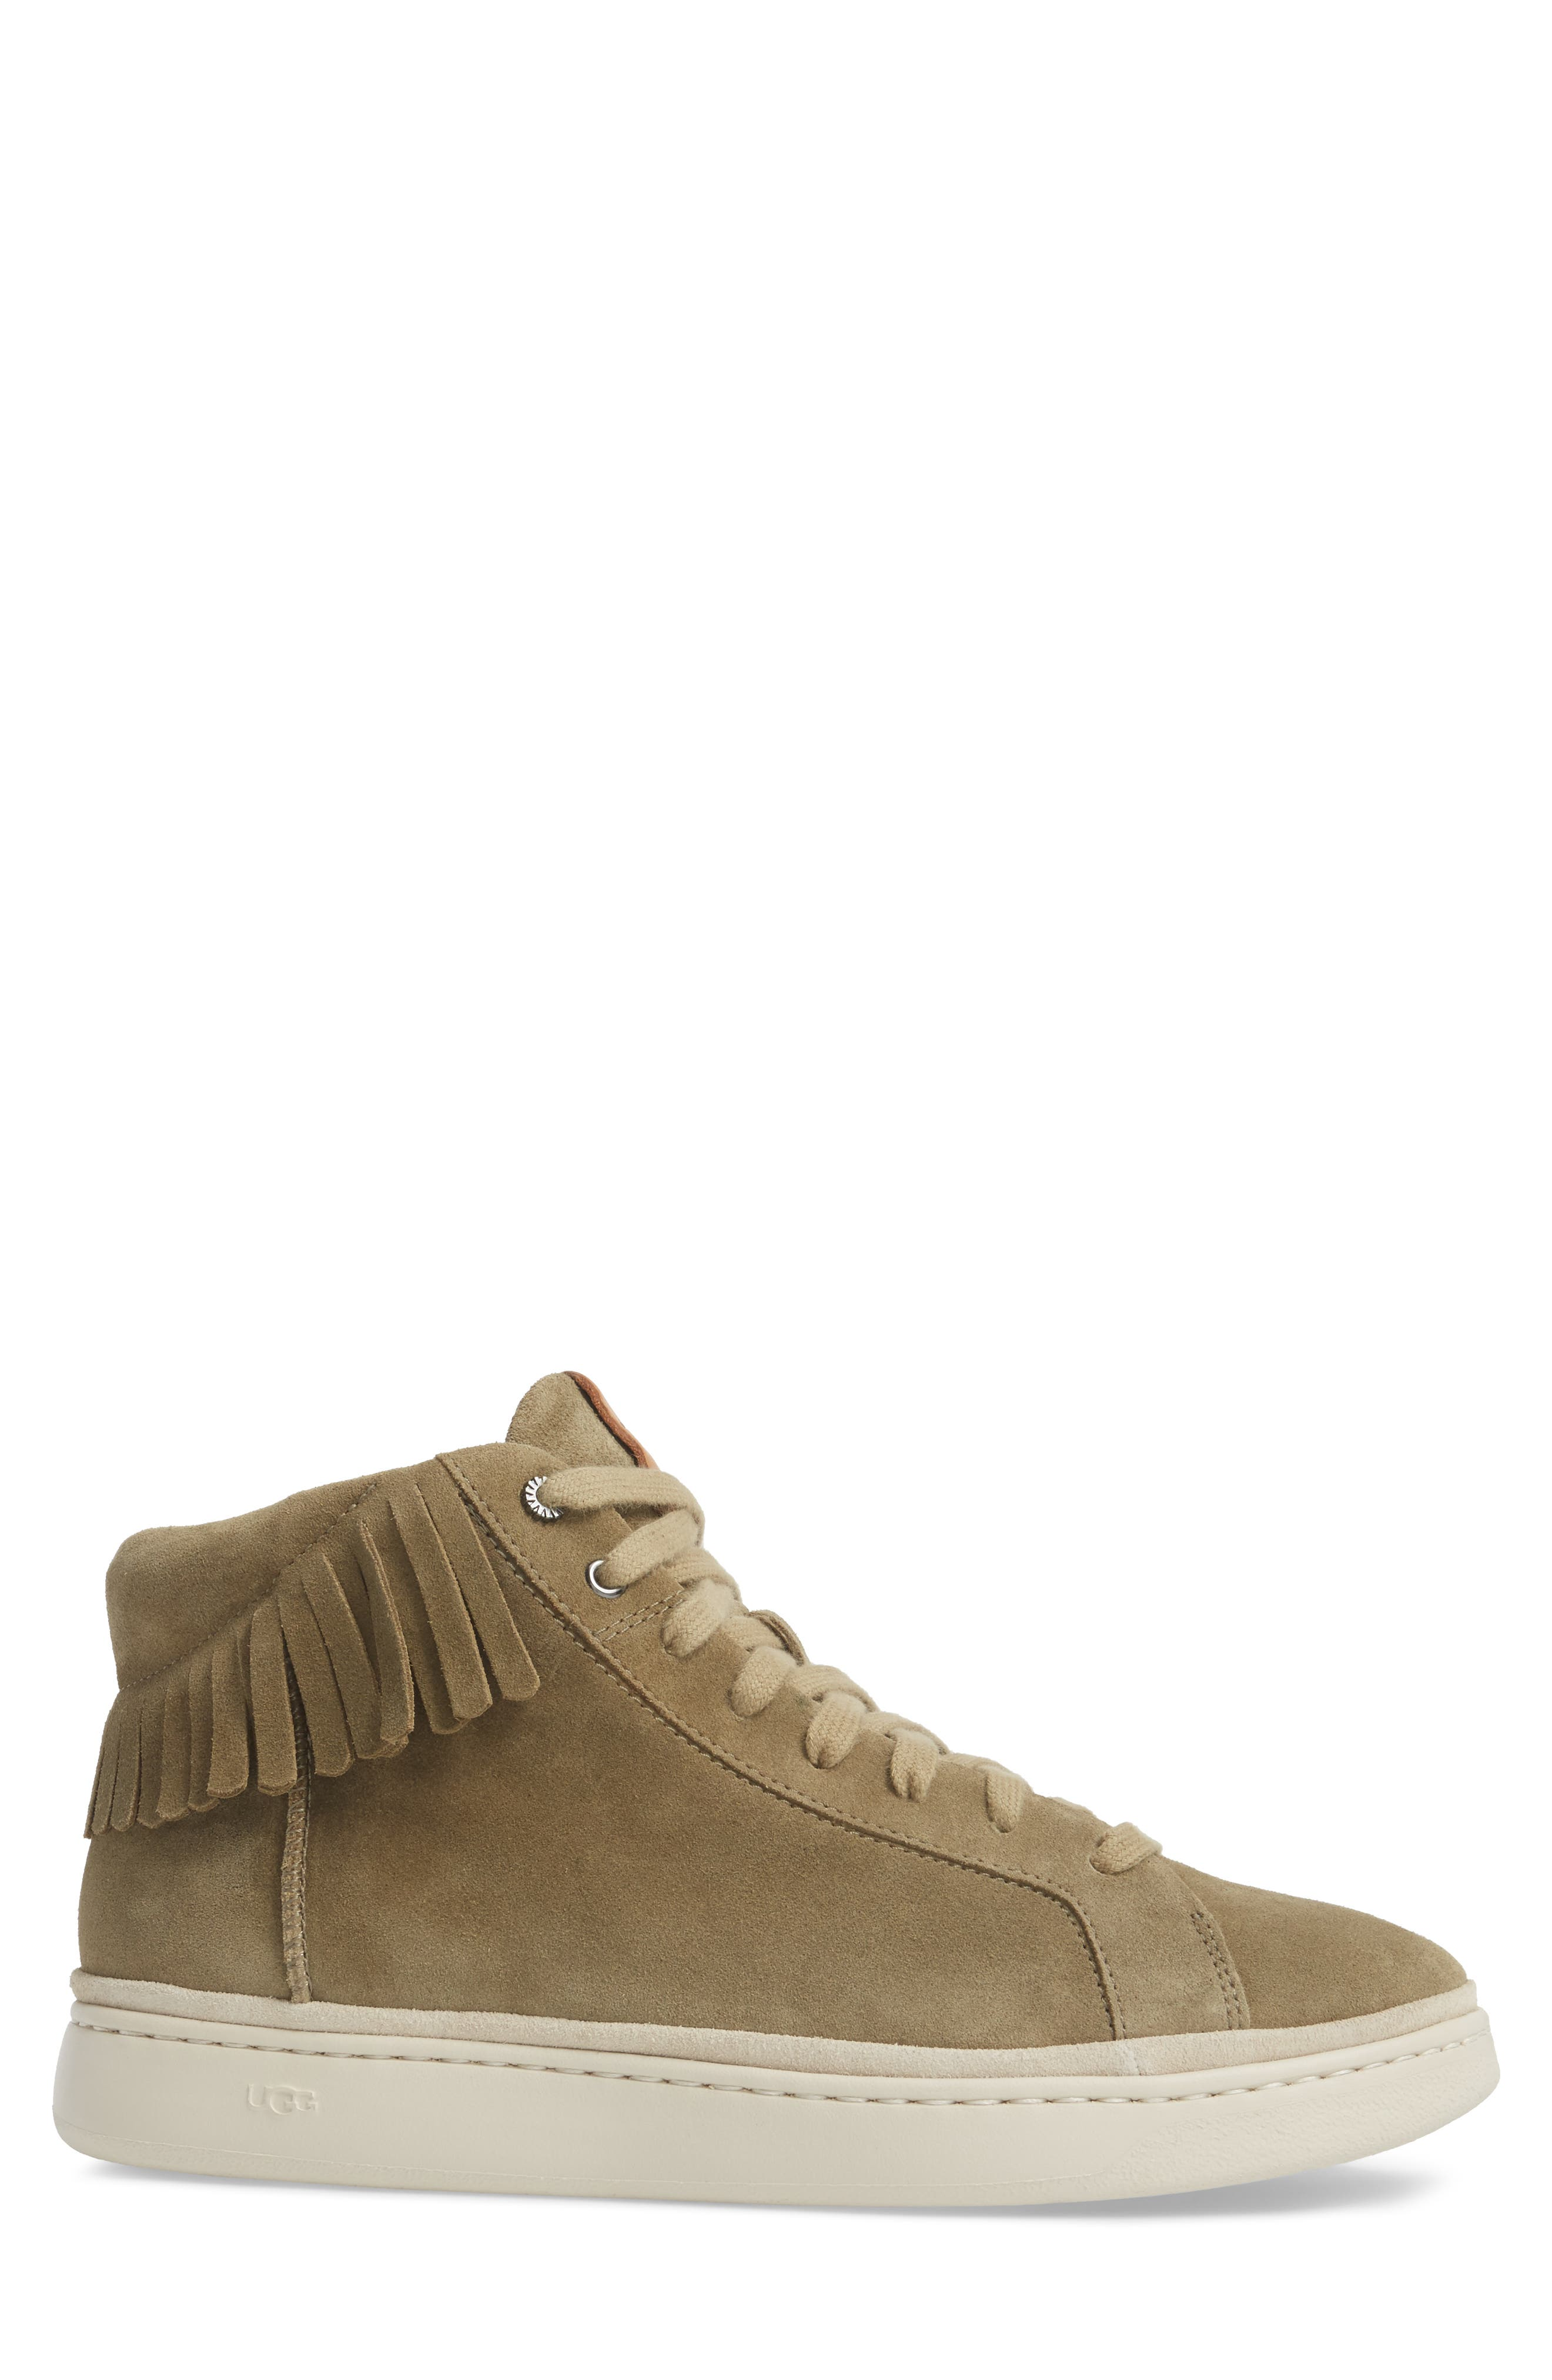 Alternate Image 3  - UGG® Brecken Fringe High-Top Sneaker (Men)